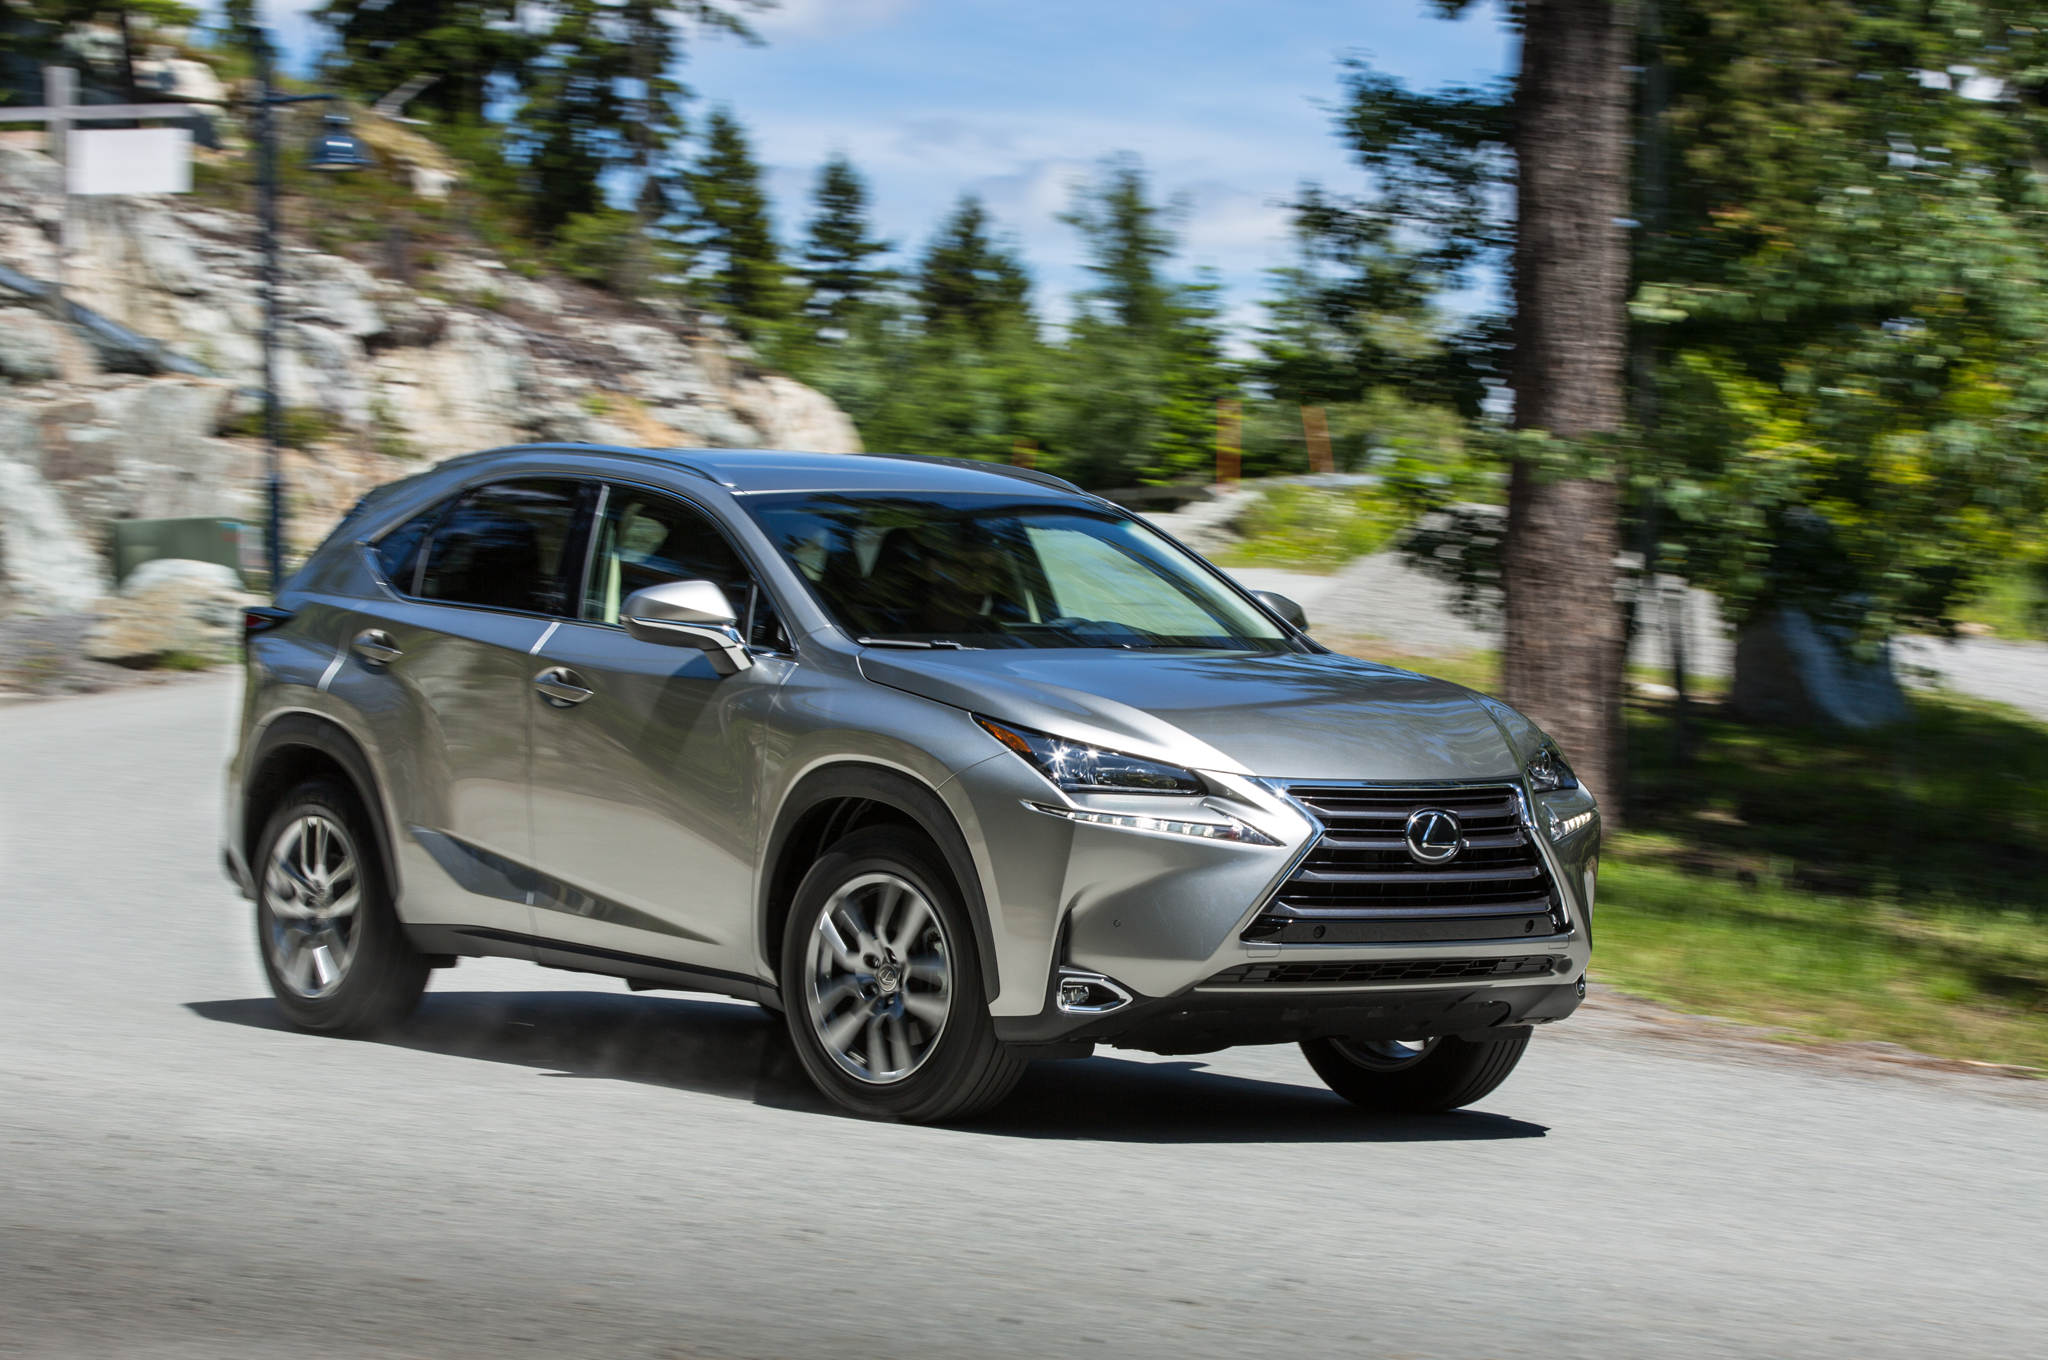 2015 Lexus NX 300h Information and photos ZombieDrive